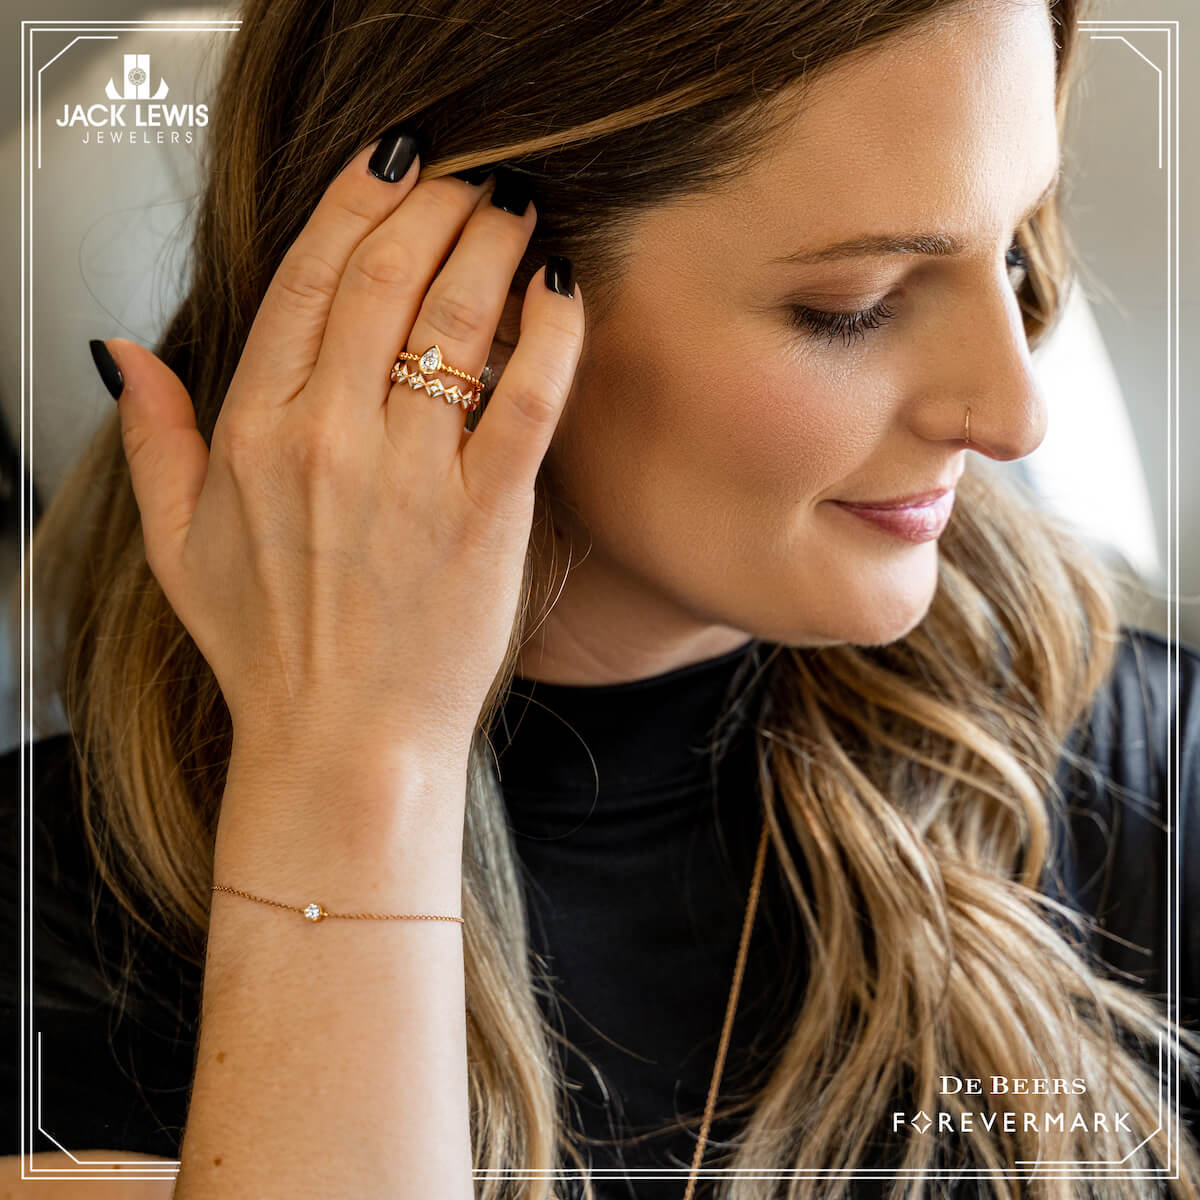 Close up of a young woman with long brown hair seating in a private yet. She is brushing her hair back and you see two gold and diamond rings on her hand from Debeers Forevermark.